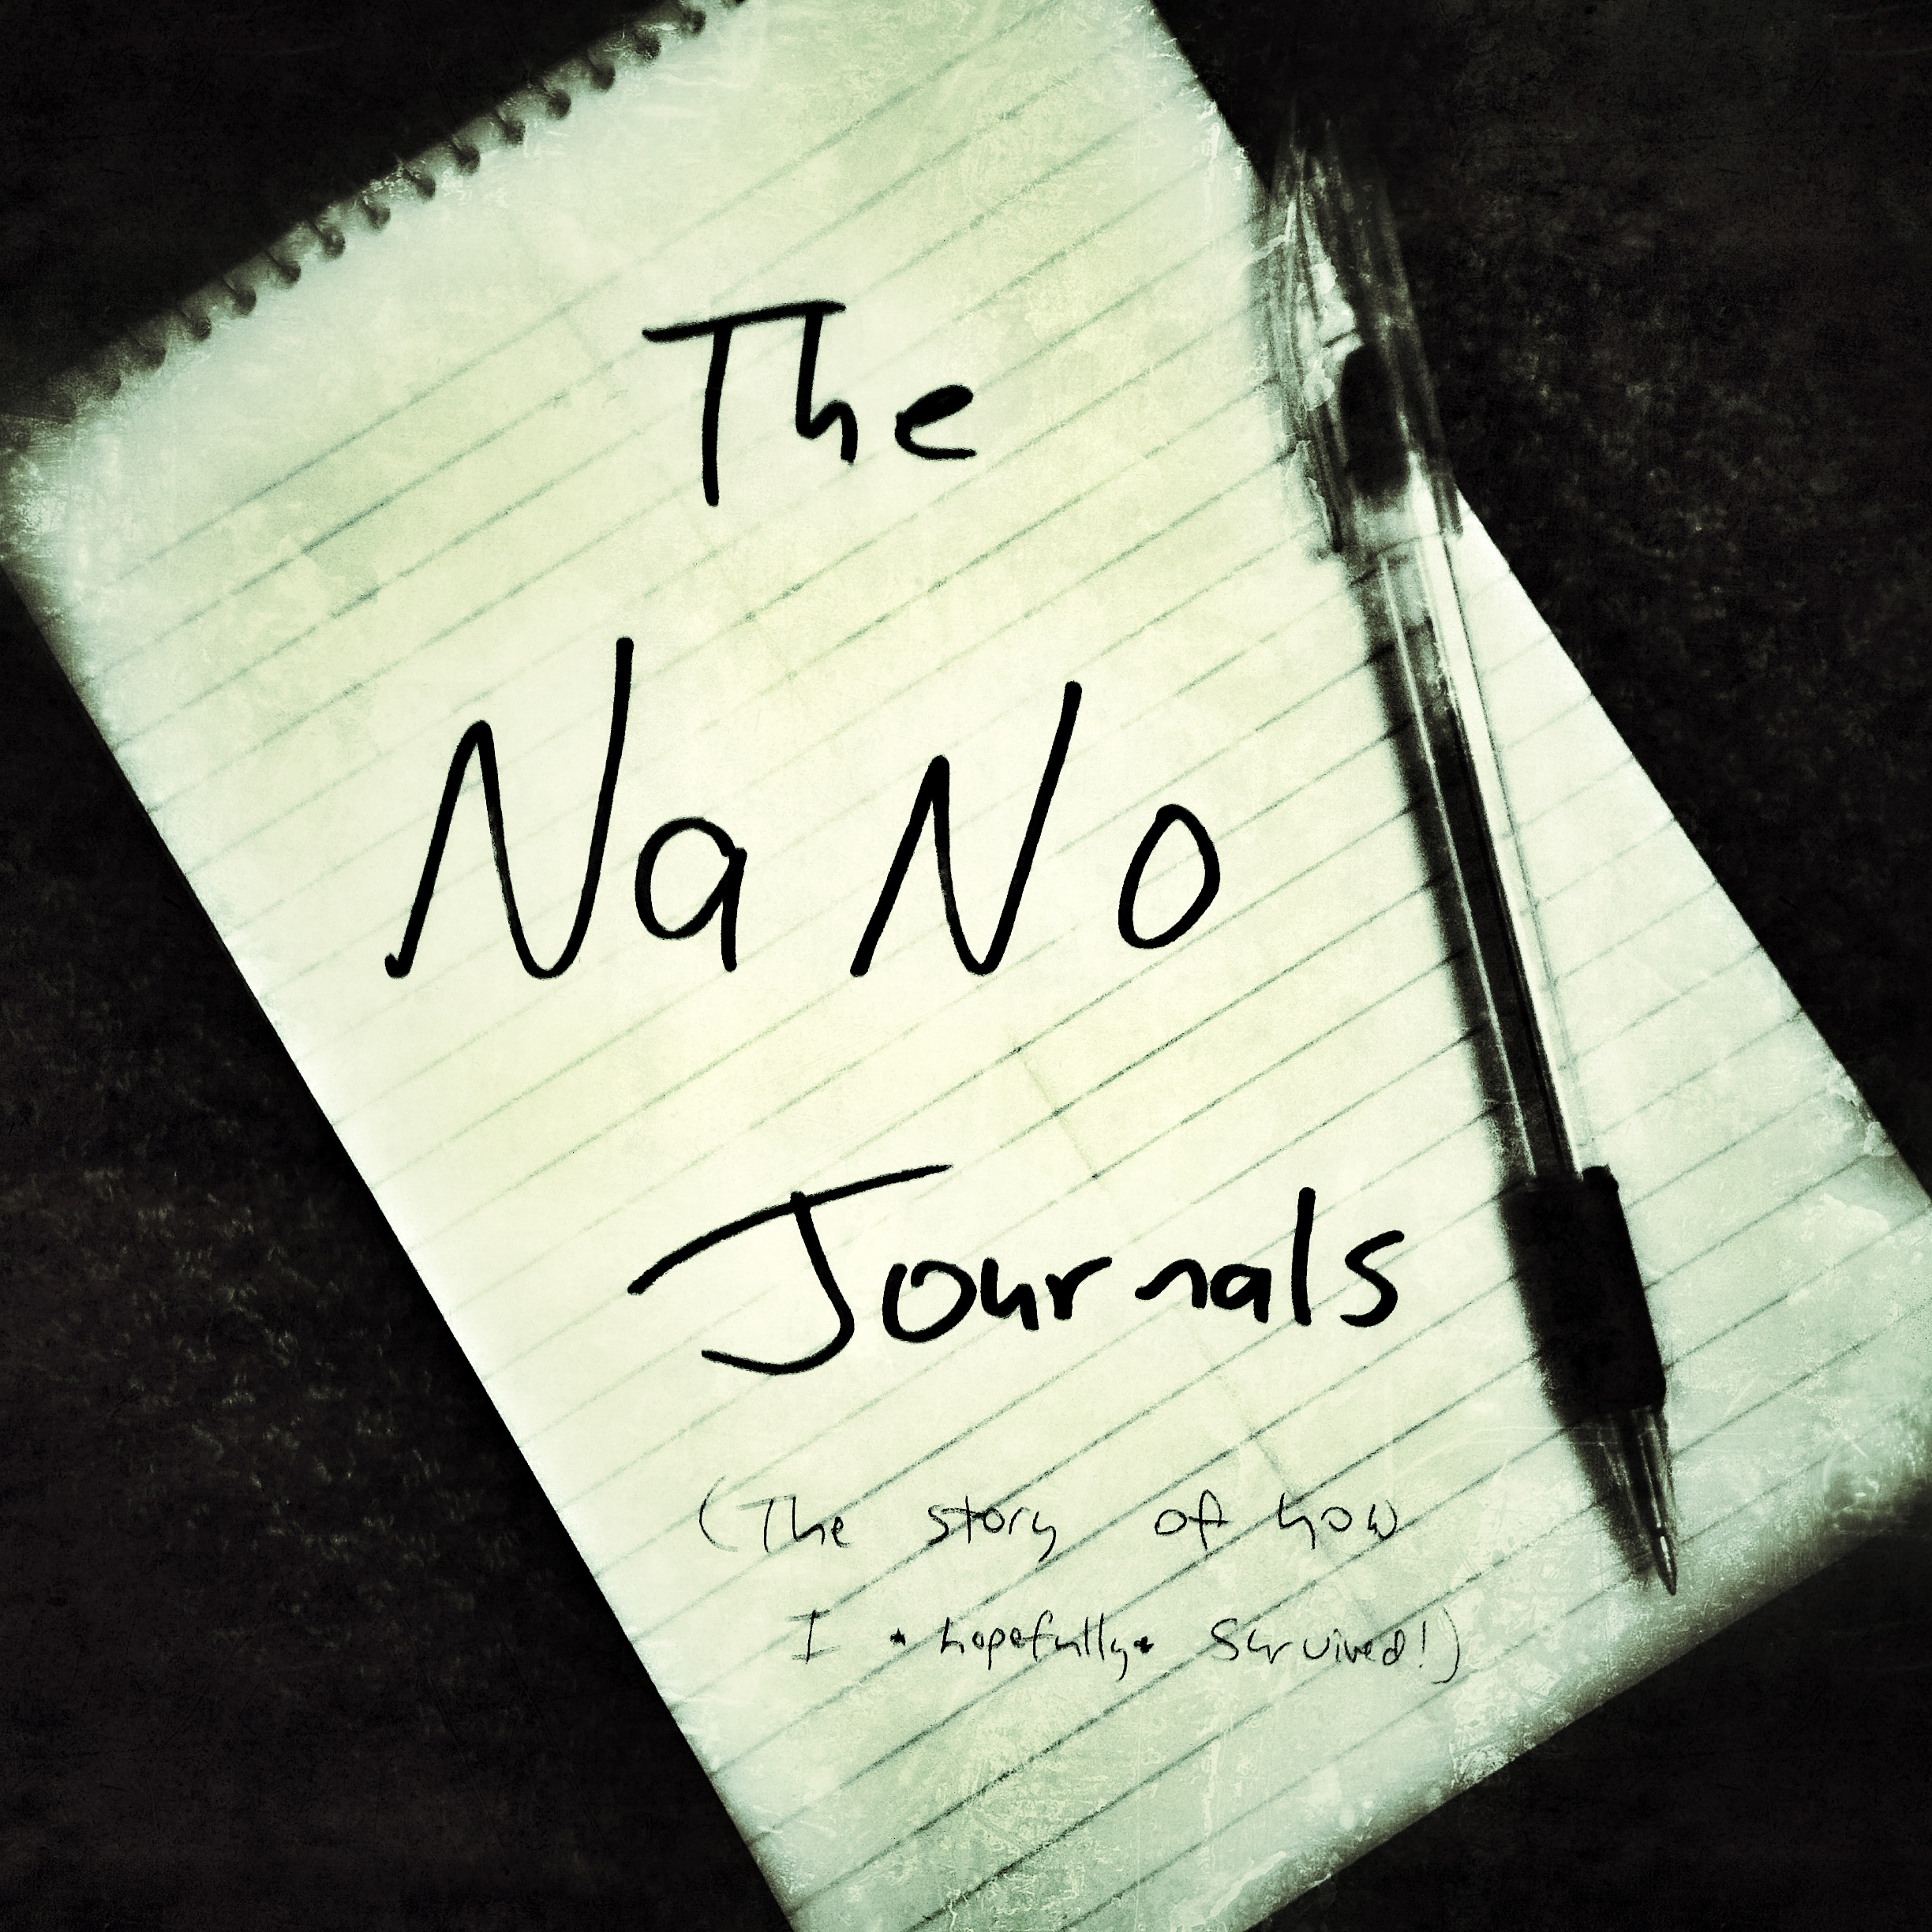 NaNo Journals Week 1:  Hitting the 10,000 Word Mark